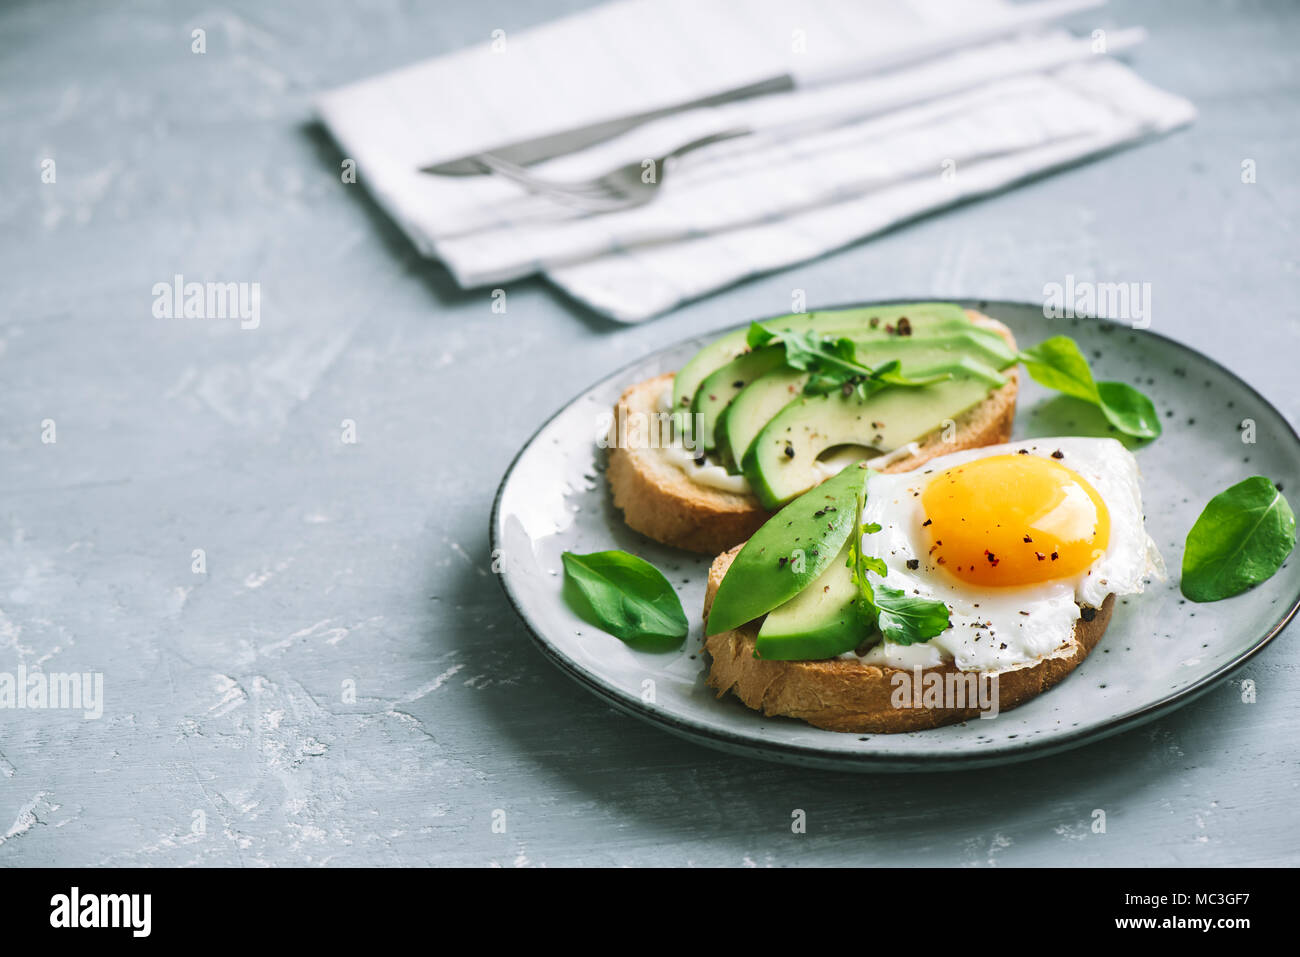 Avocado Sandwich with Fried Egg - sliced avocado and  egg on toasted bread with arugula for healthy breakfast or snack, copy space. - Stock Image